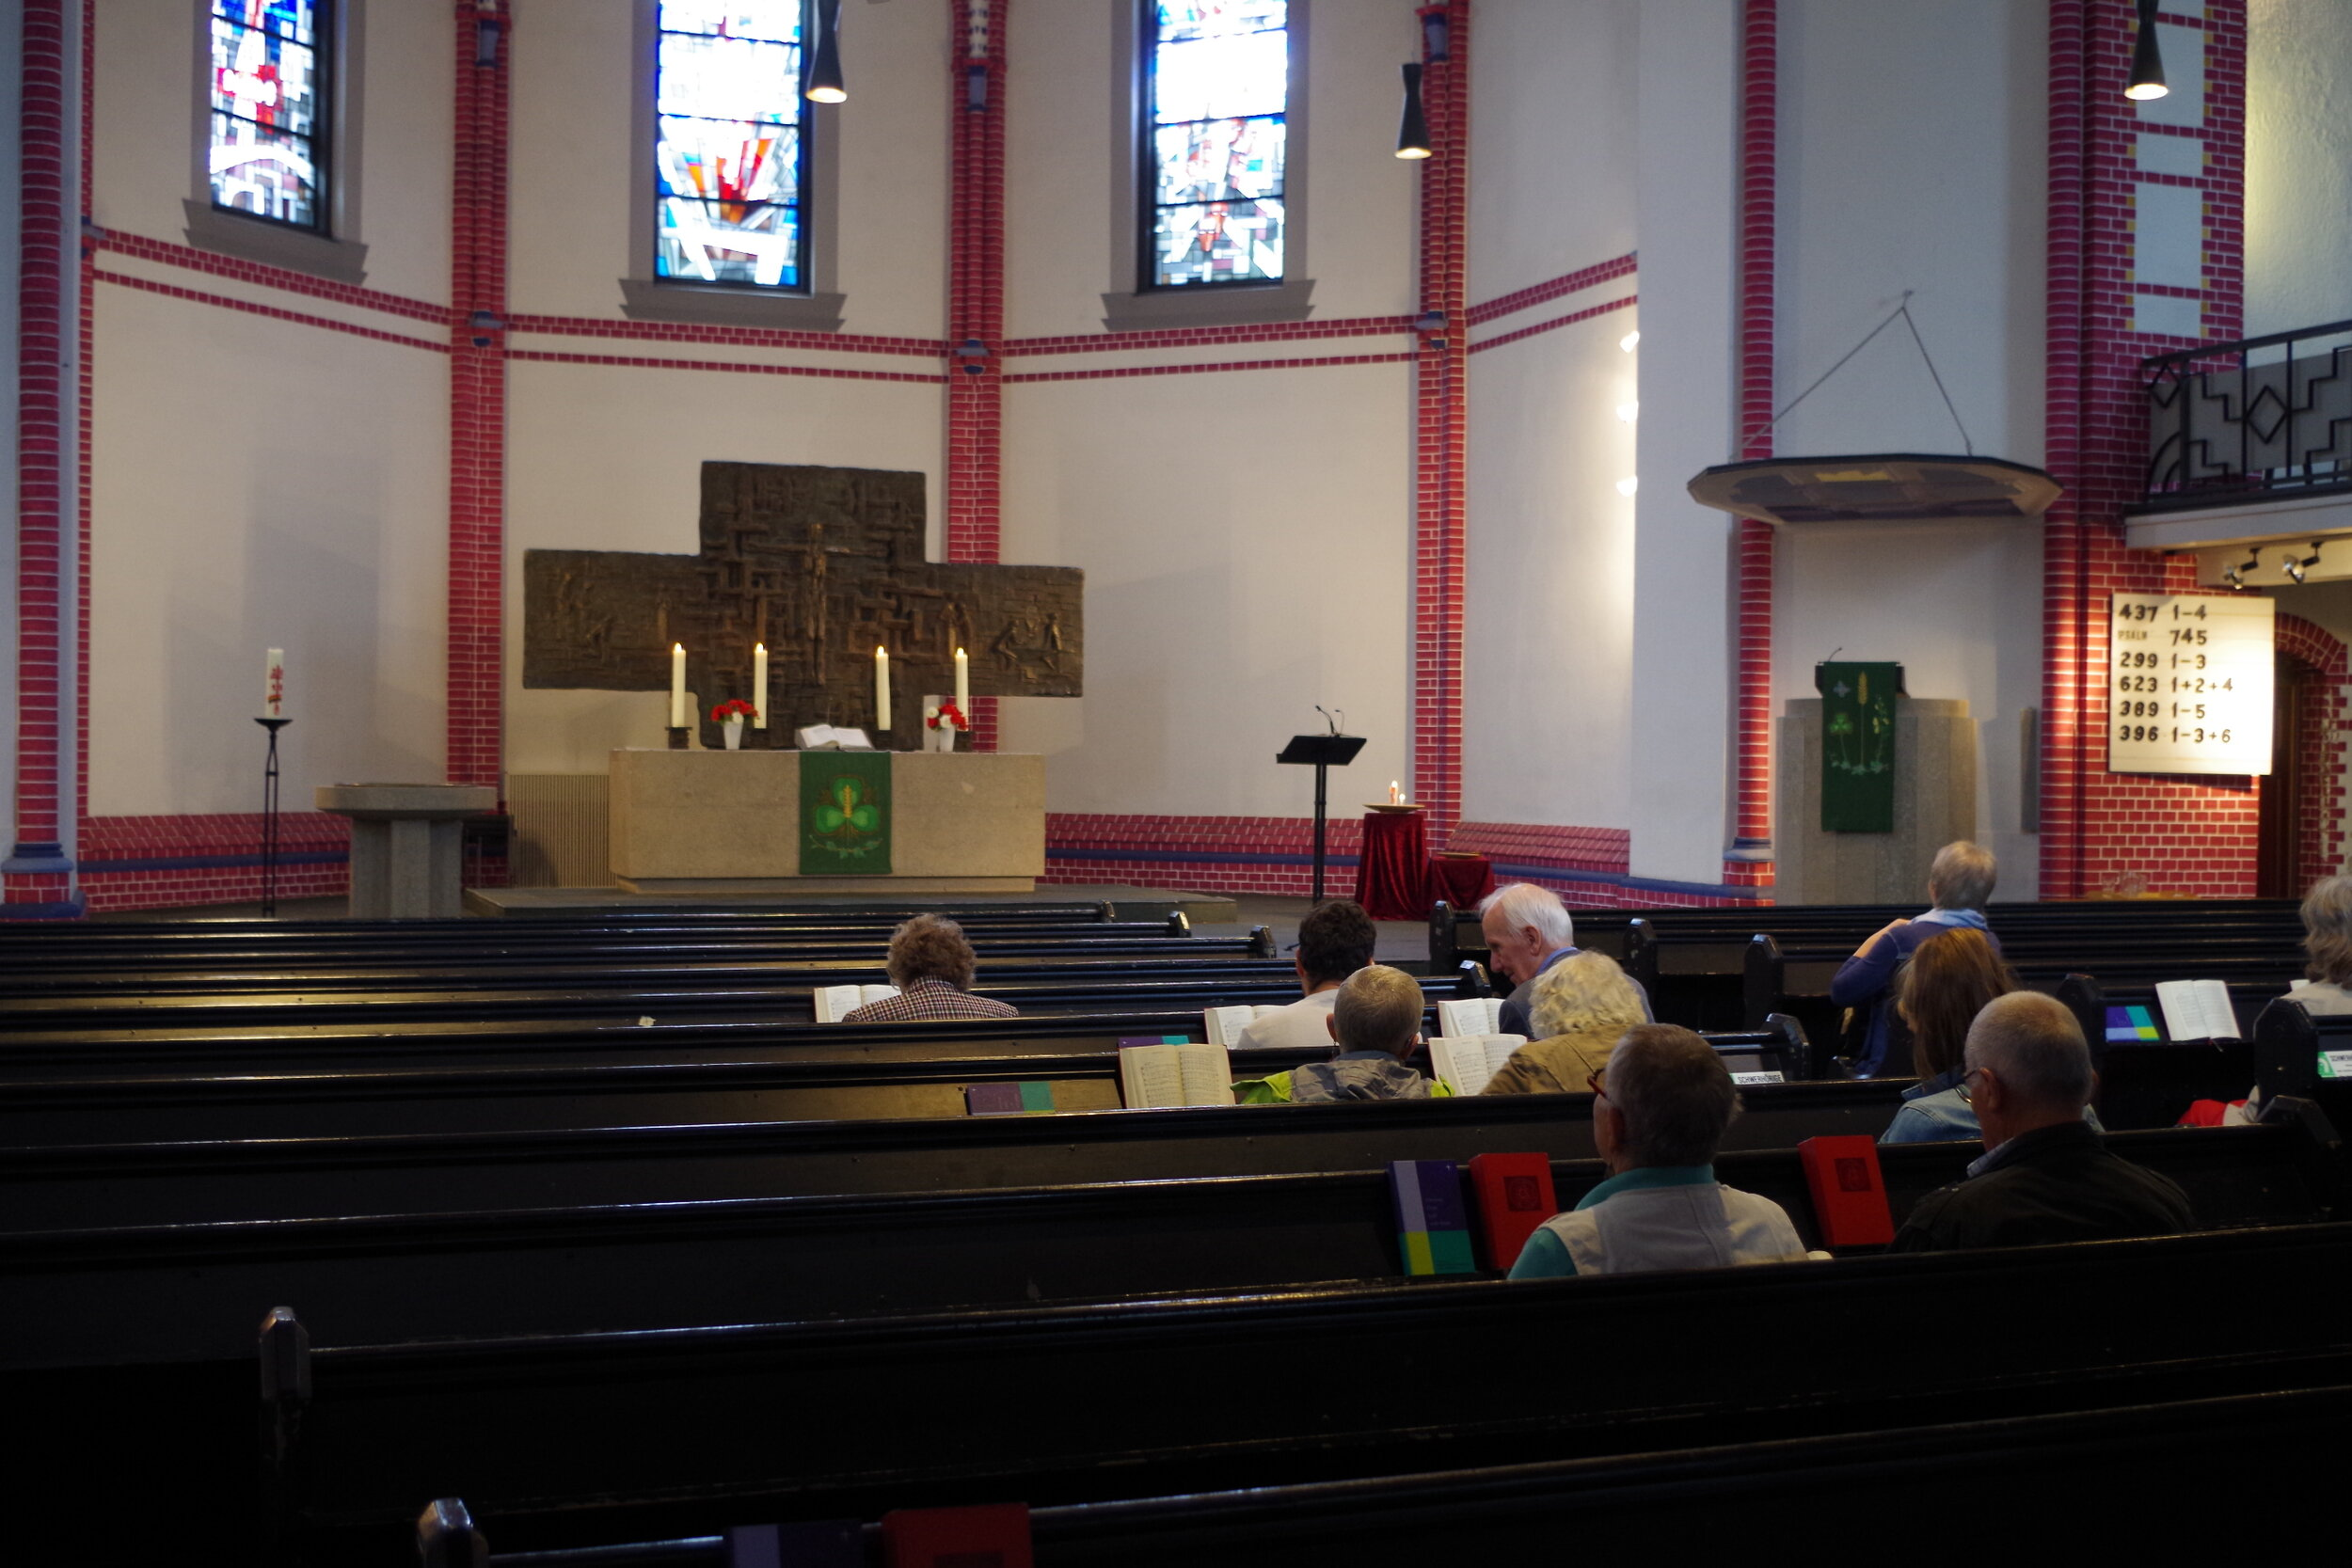 Members of a Protestant church in Hamburg gather for their Sunday service. Photo by Jelena Malkowski.